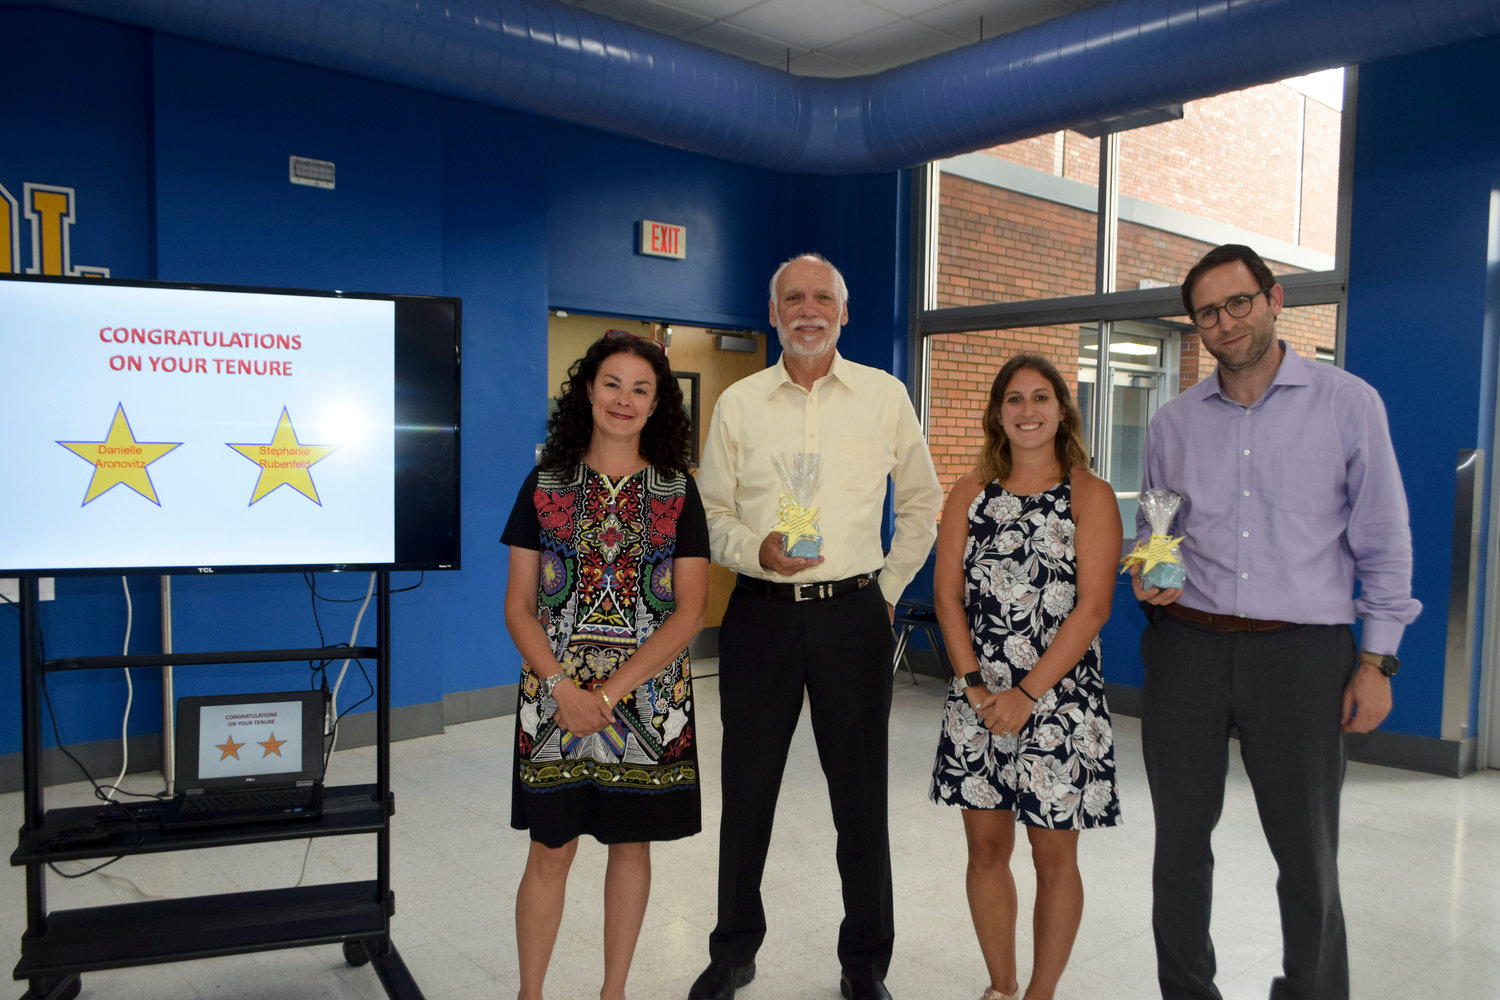 Lawrence School District teachers Danielle Aronovitz, left, and Stephanie Rubenfeld, were recognized at the Aug. 5 Board of Education for earning tenure. Trustees Michael Hatten, second from left, and Abel Feldhamer congratulated the educators.